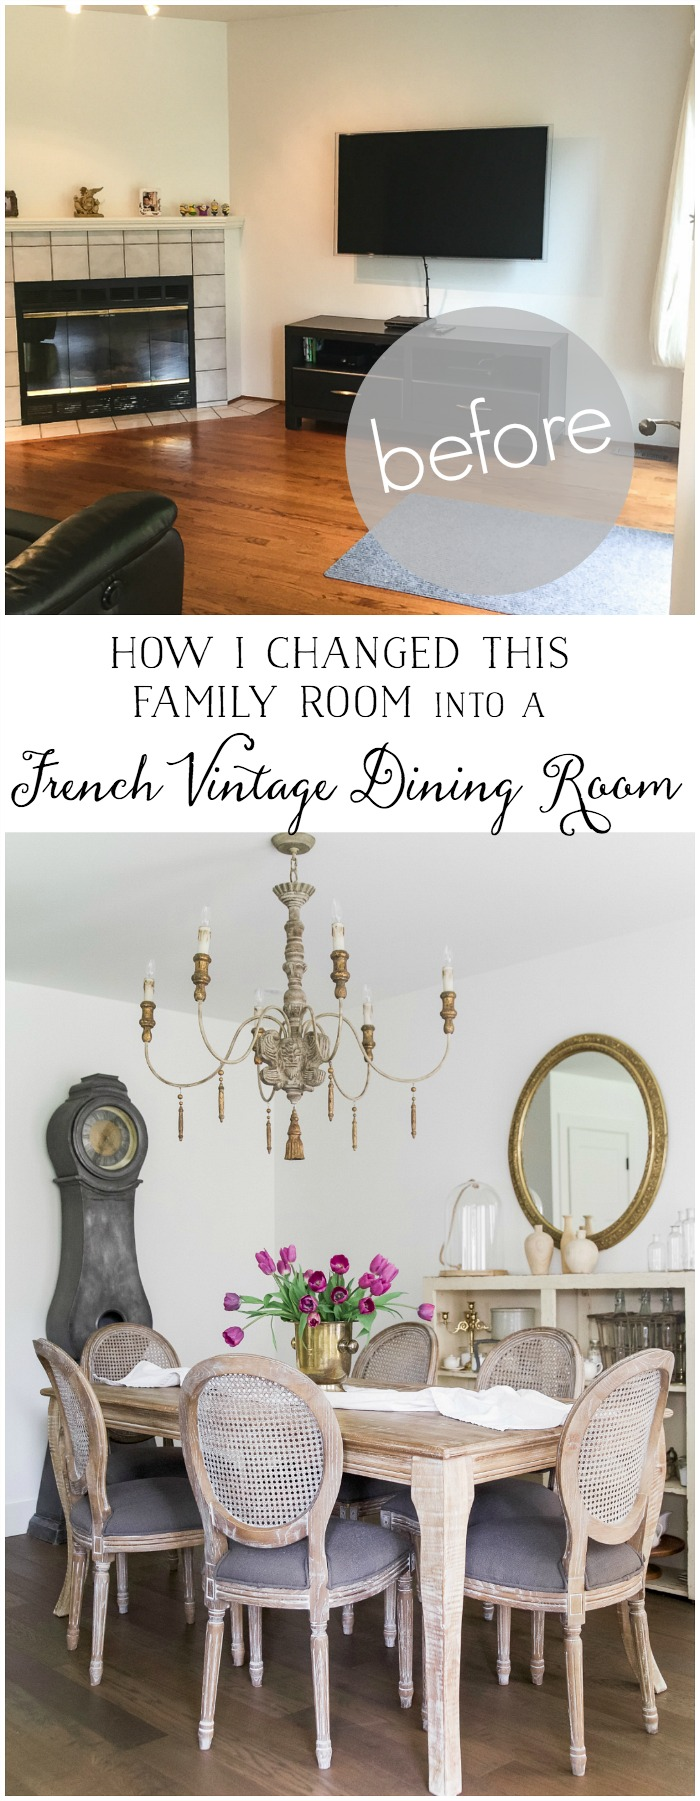 How I Changed this Family Room into a French Vintage Dining Room - So Much Better With Age